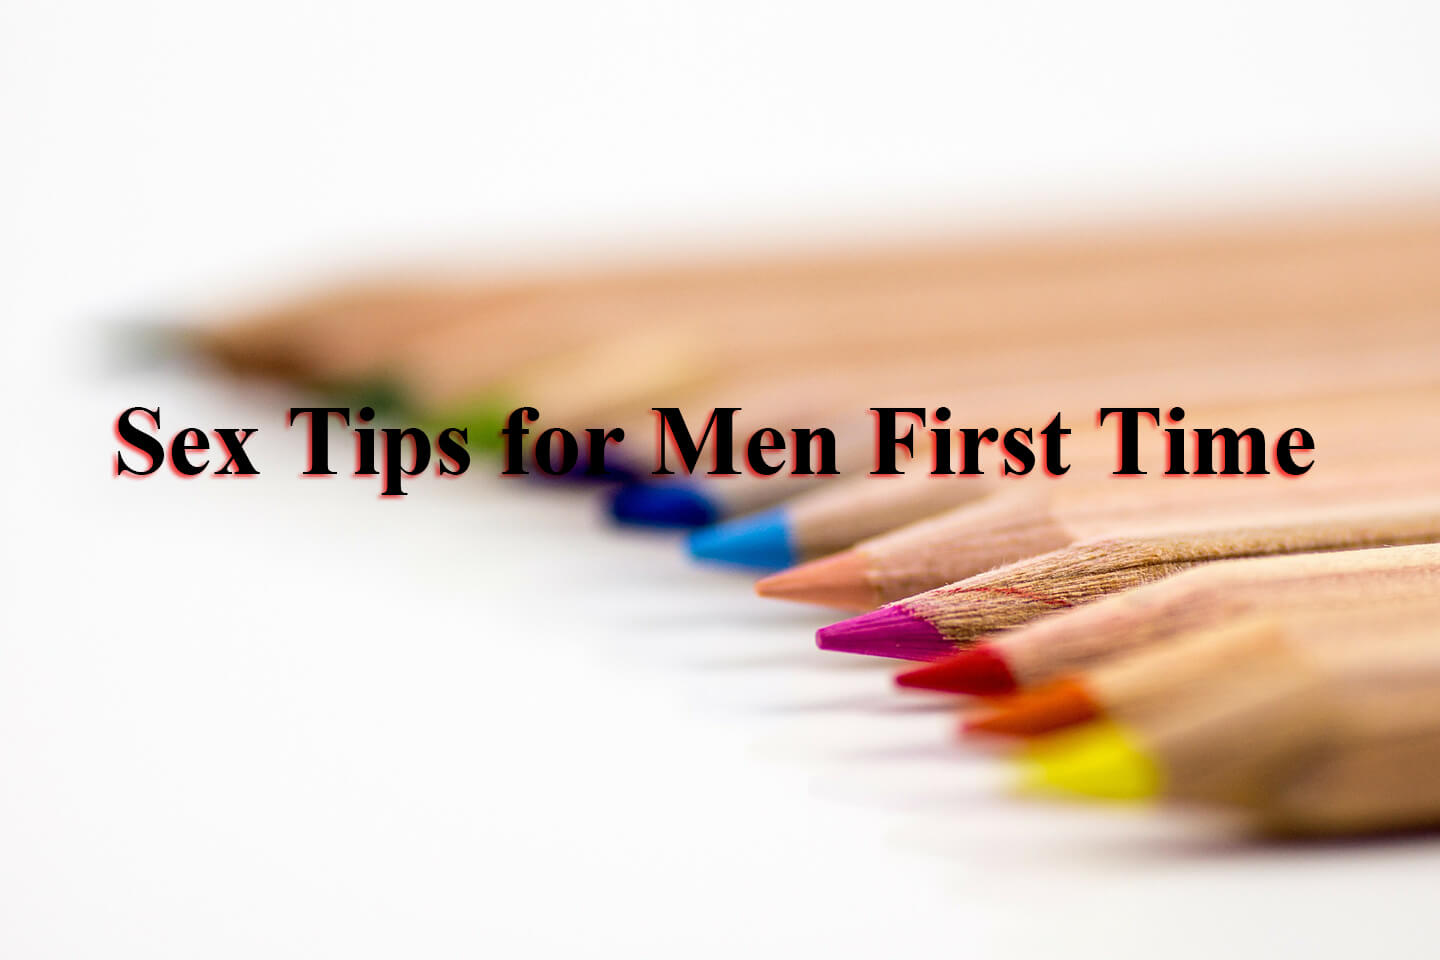 Sex-Tips-for-Men-First-Time-Banner